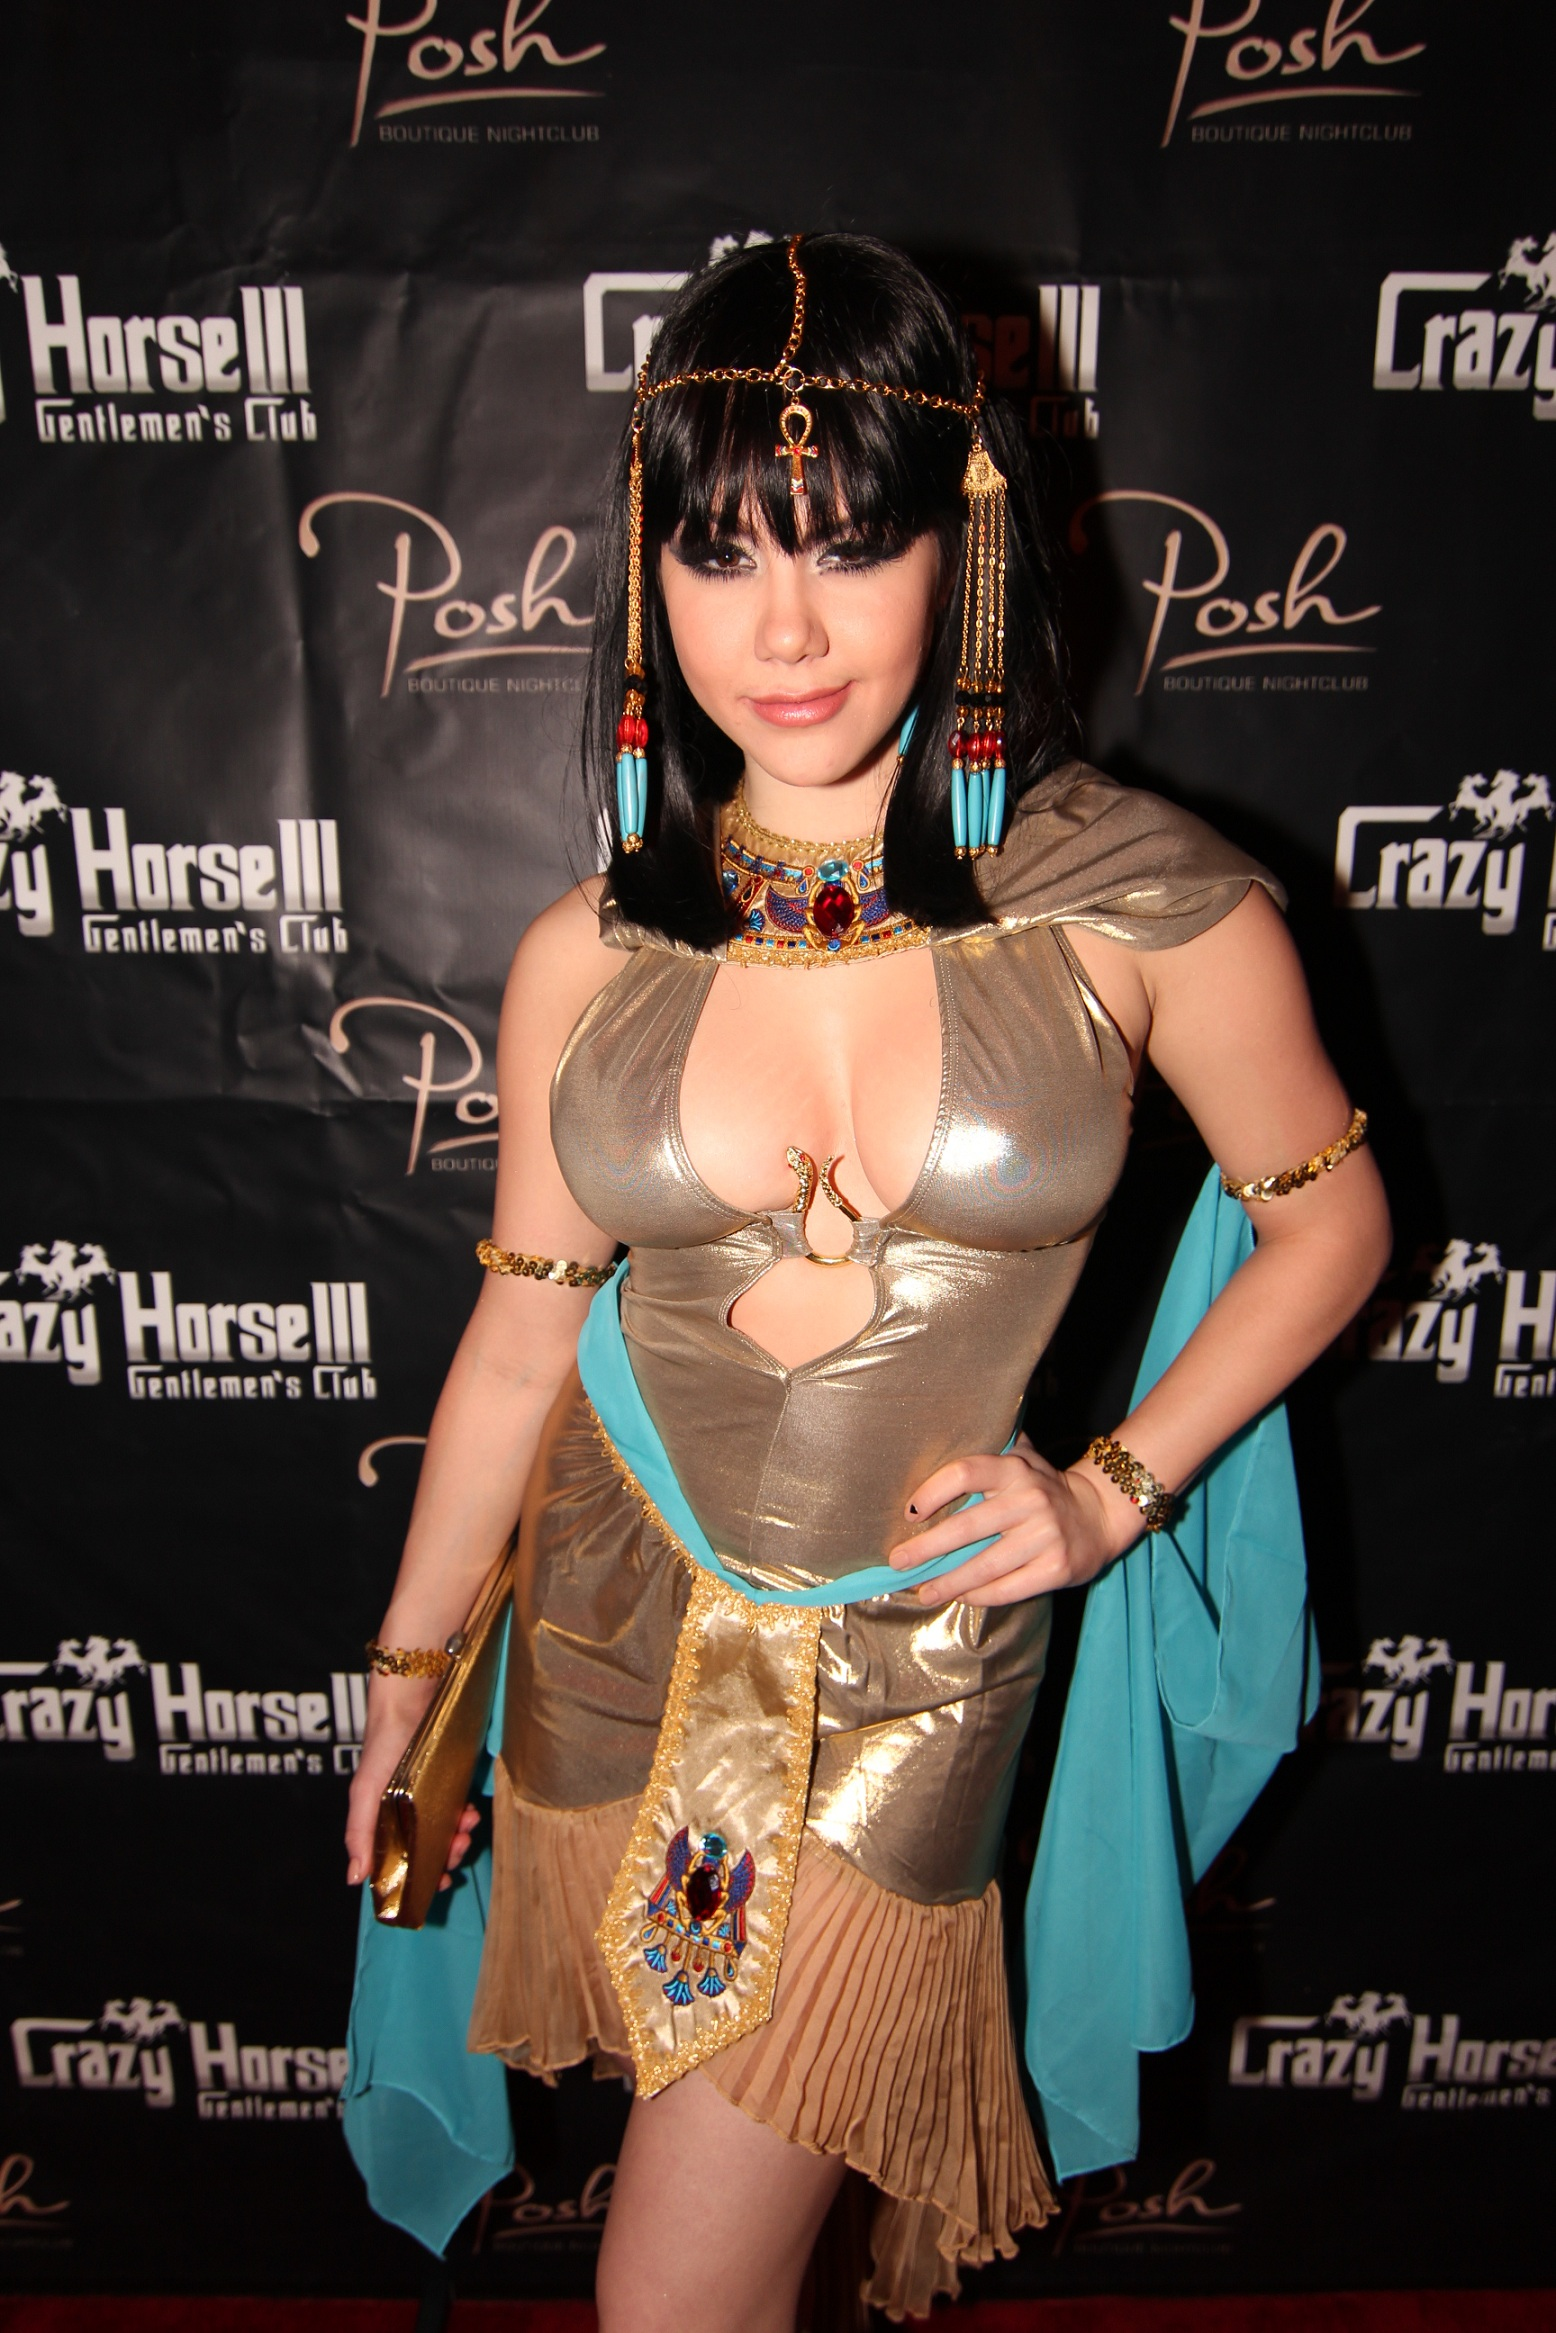 Claire Sinclair at Posh Boutique  Nightclub inside Crazy Horse III